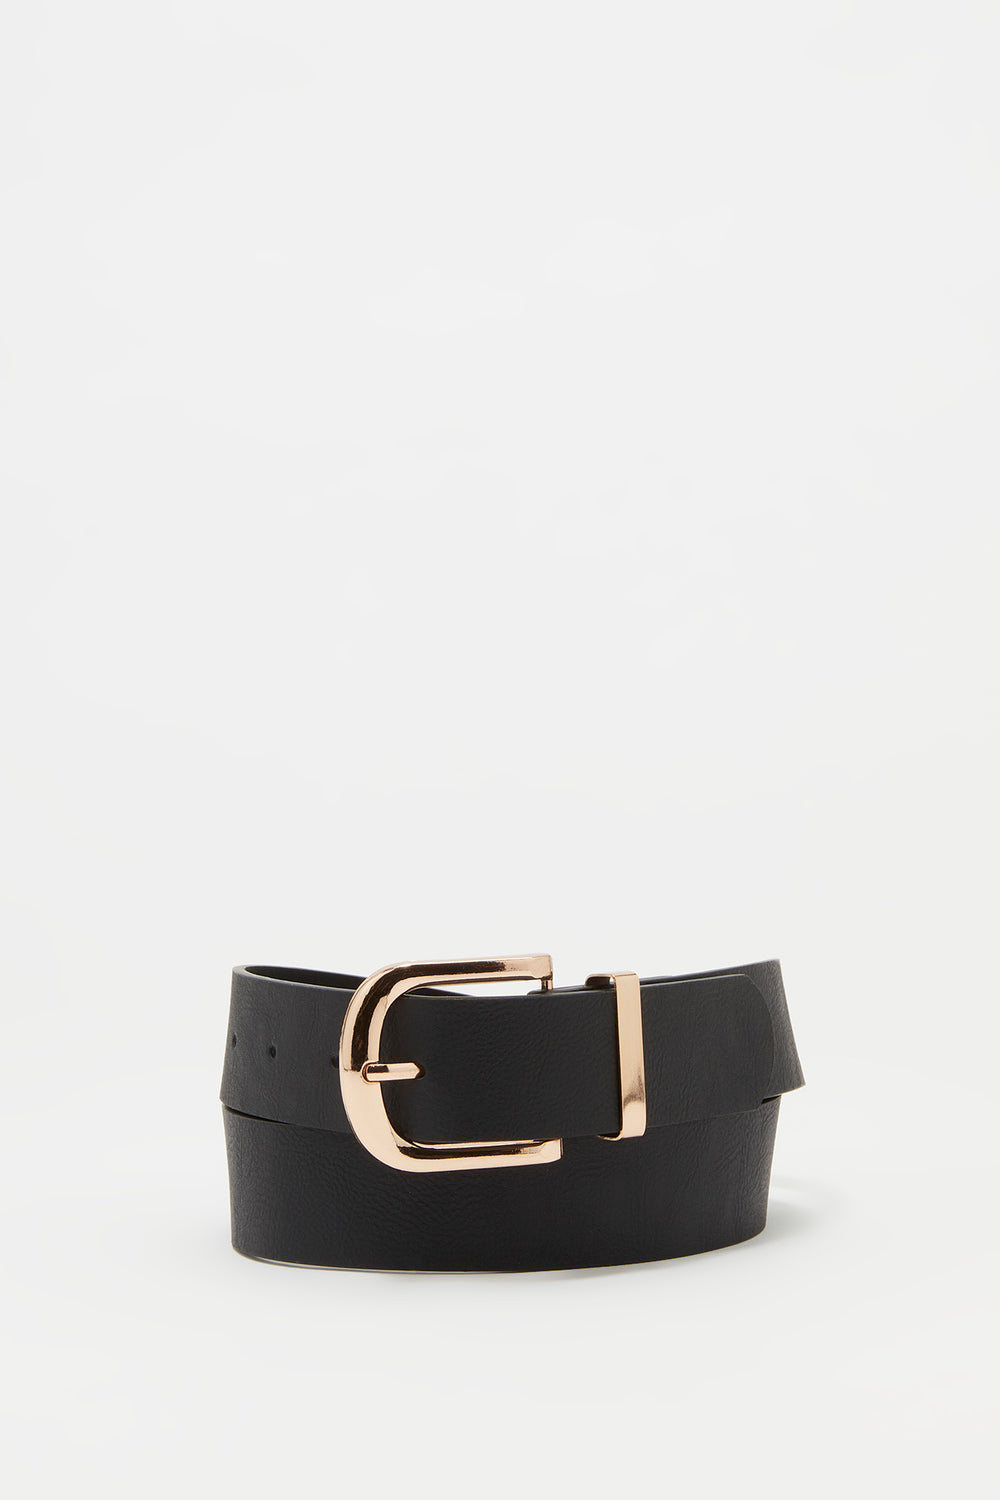 Basic Buckle Belt Black